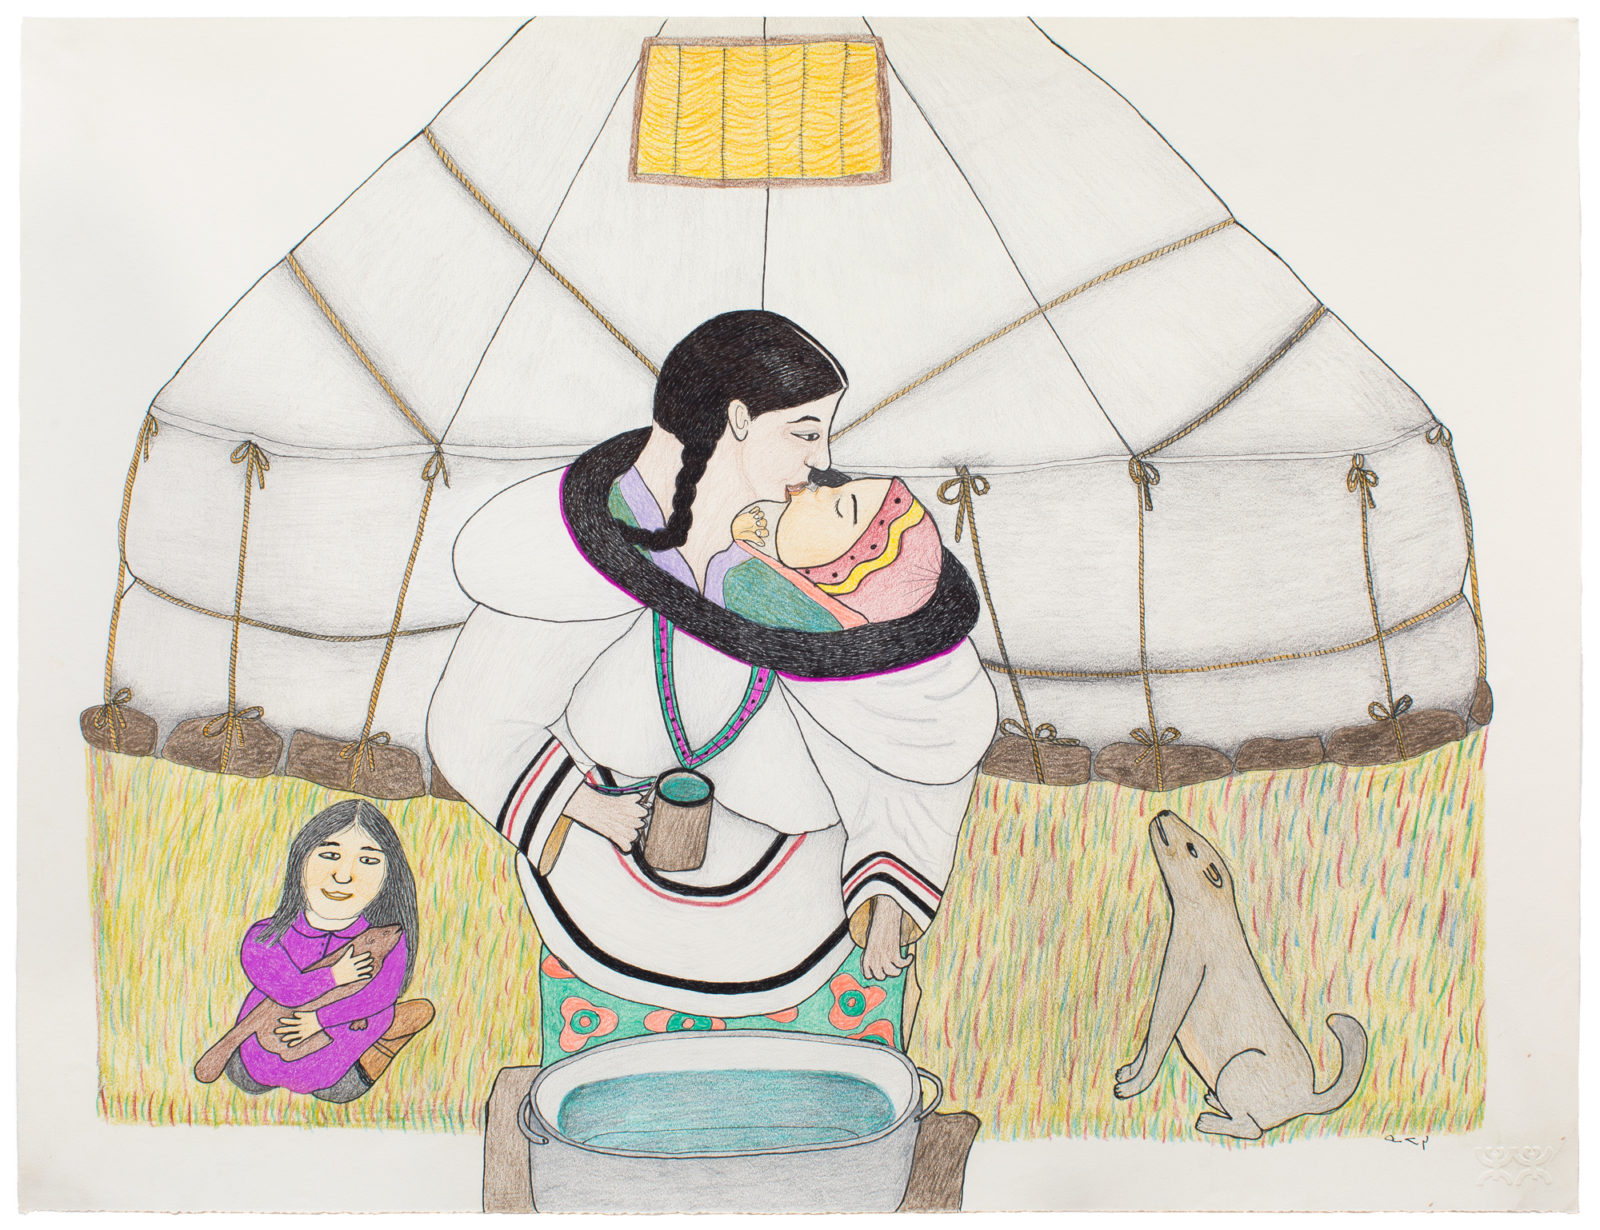 Napatchie Pootoogook - untitled (giving water)